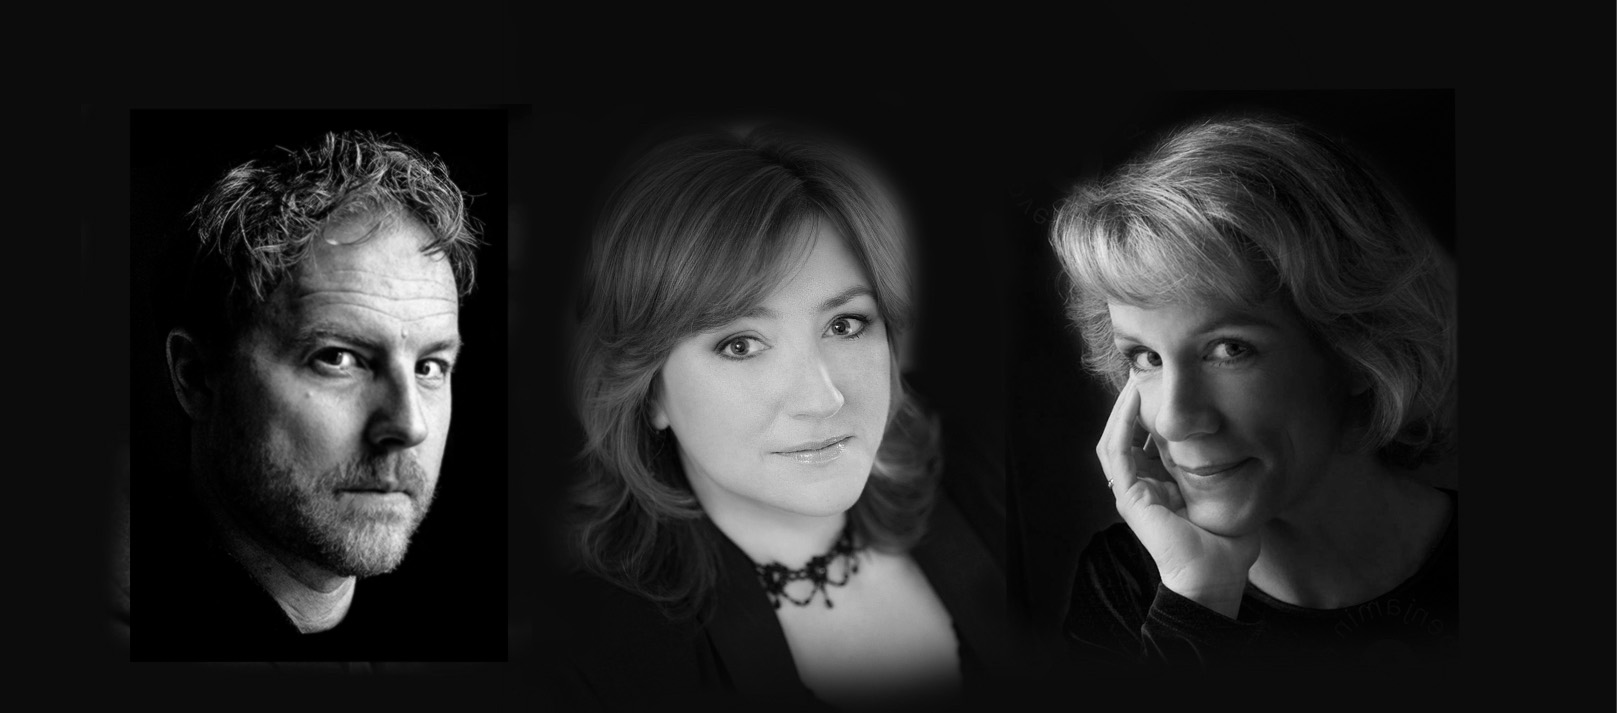 "NEXT FUNDRAISER 1 MARCH 2019  Join us for a special evening of music and drama "" BELOVED CLARA "" recounting the tempestuous life of Clara Schumann at Highgate School, N6. Samuel West, Lucy Parham & Juliet Stevenson will perform at our next fundraiser. Hosted by Deborah Frances-White  More details  here"